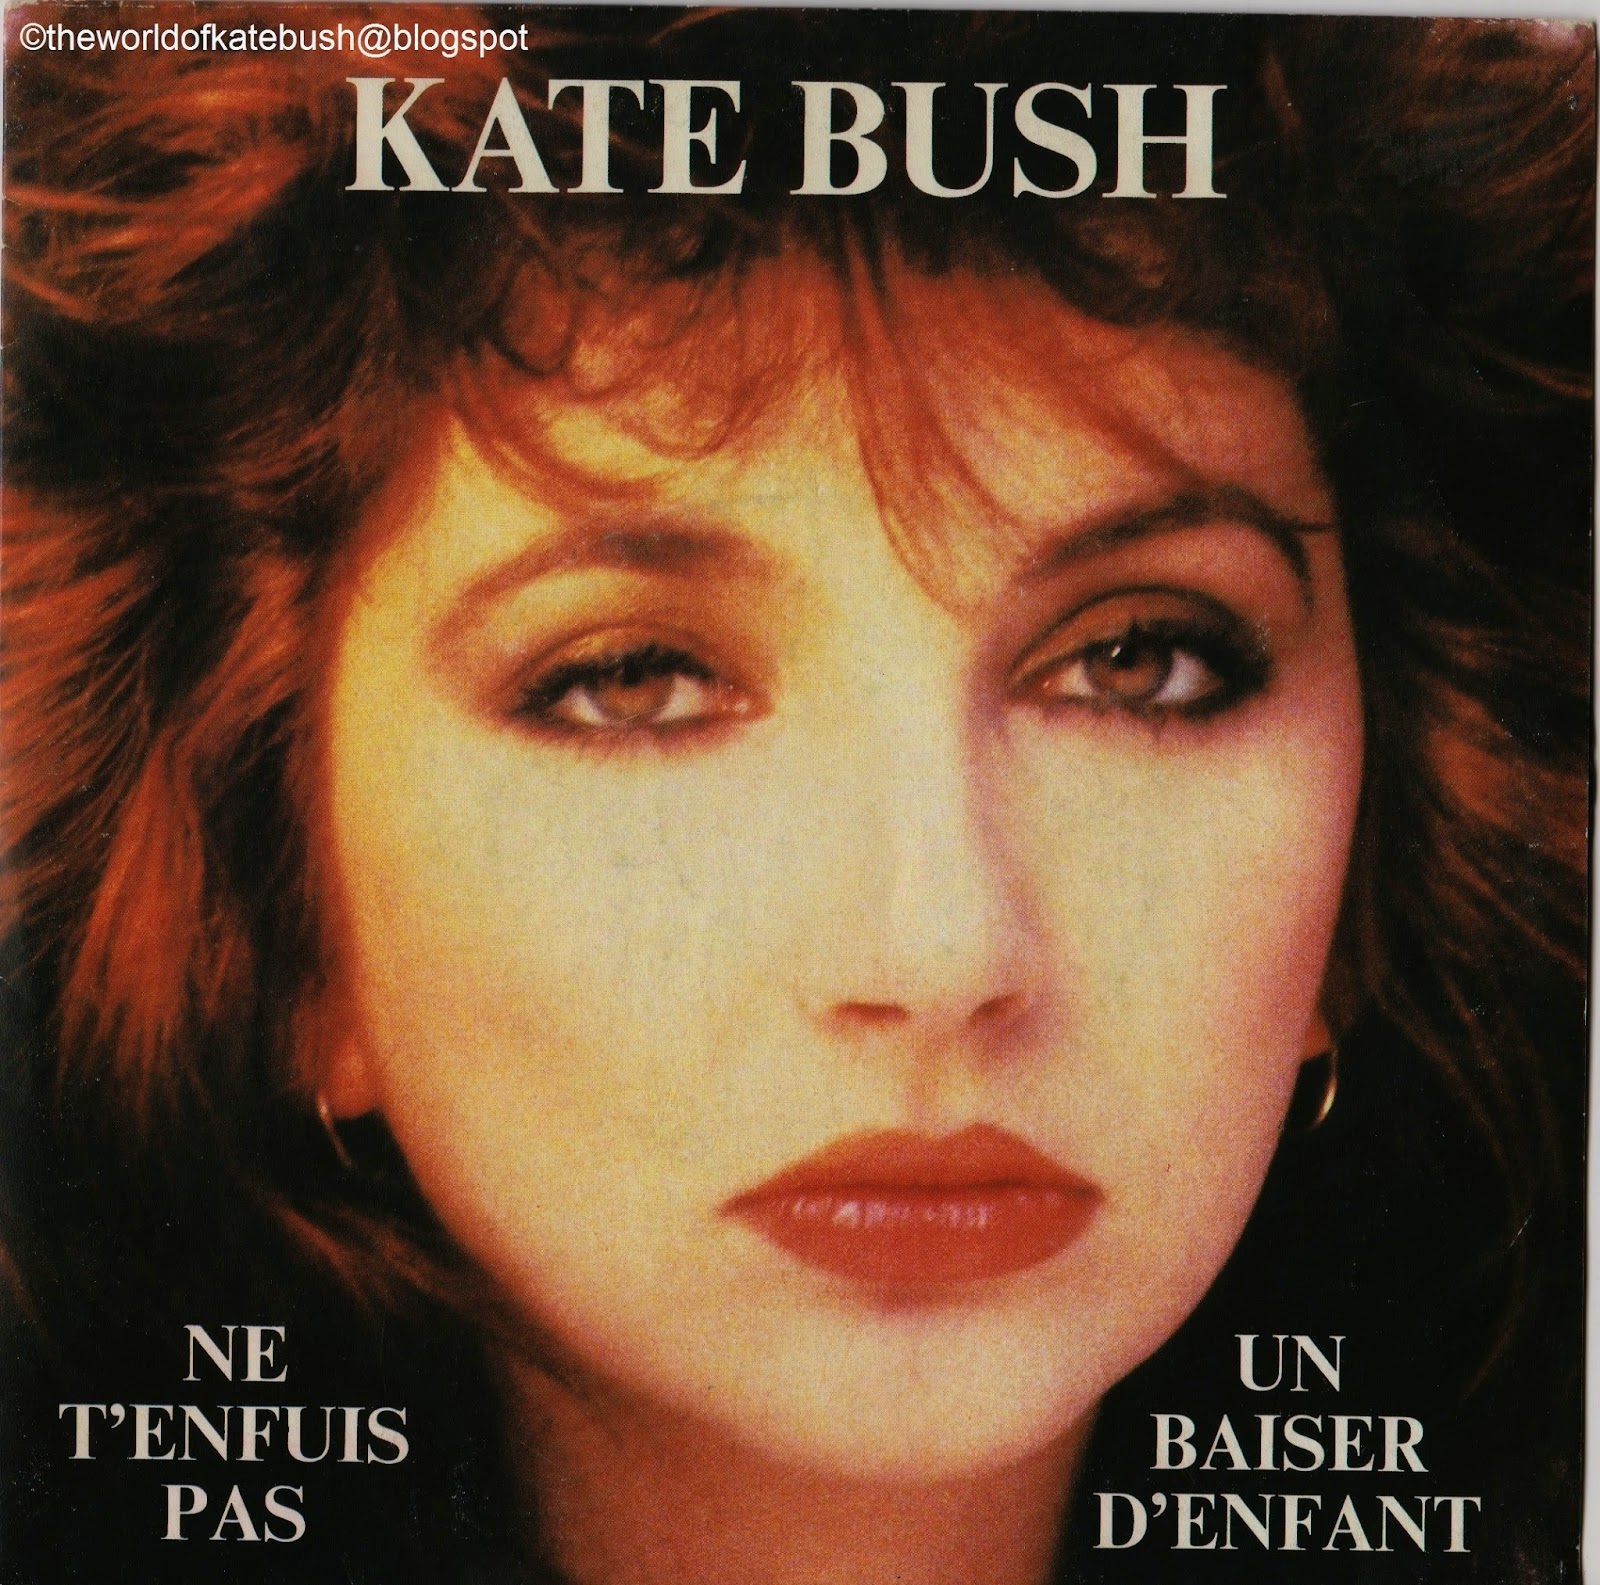 bush singles This is the complete discography (albums, eps, singles and videos) of english singer-songwriter kate bush.